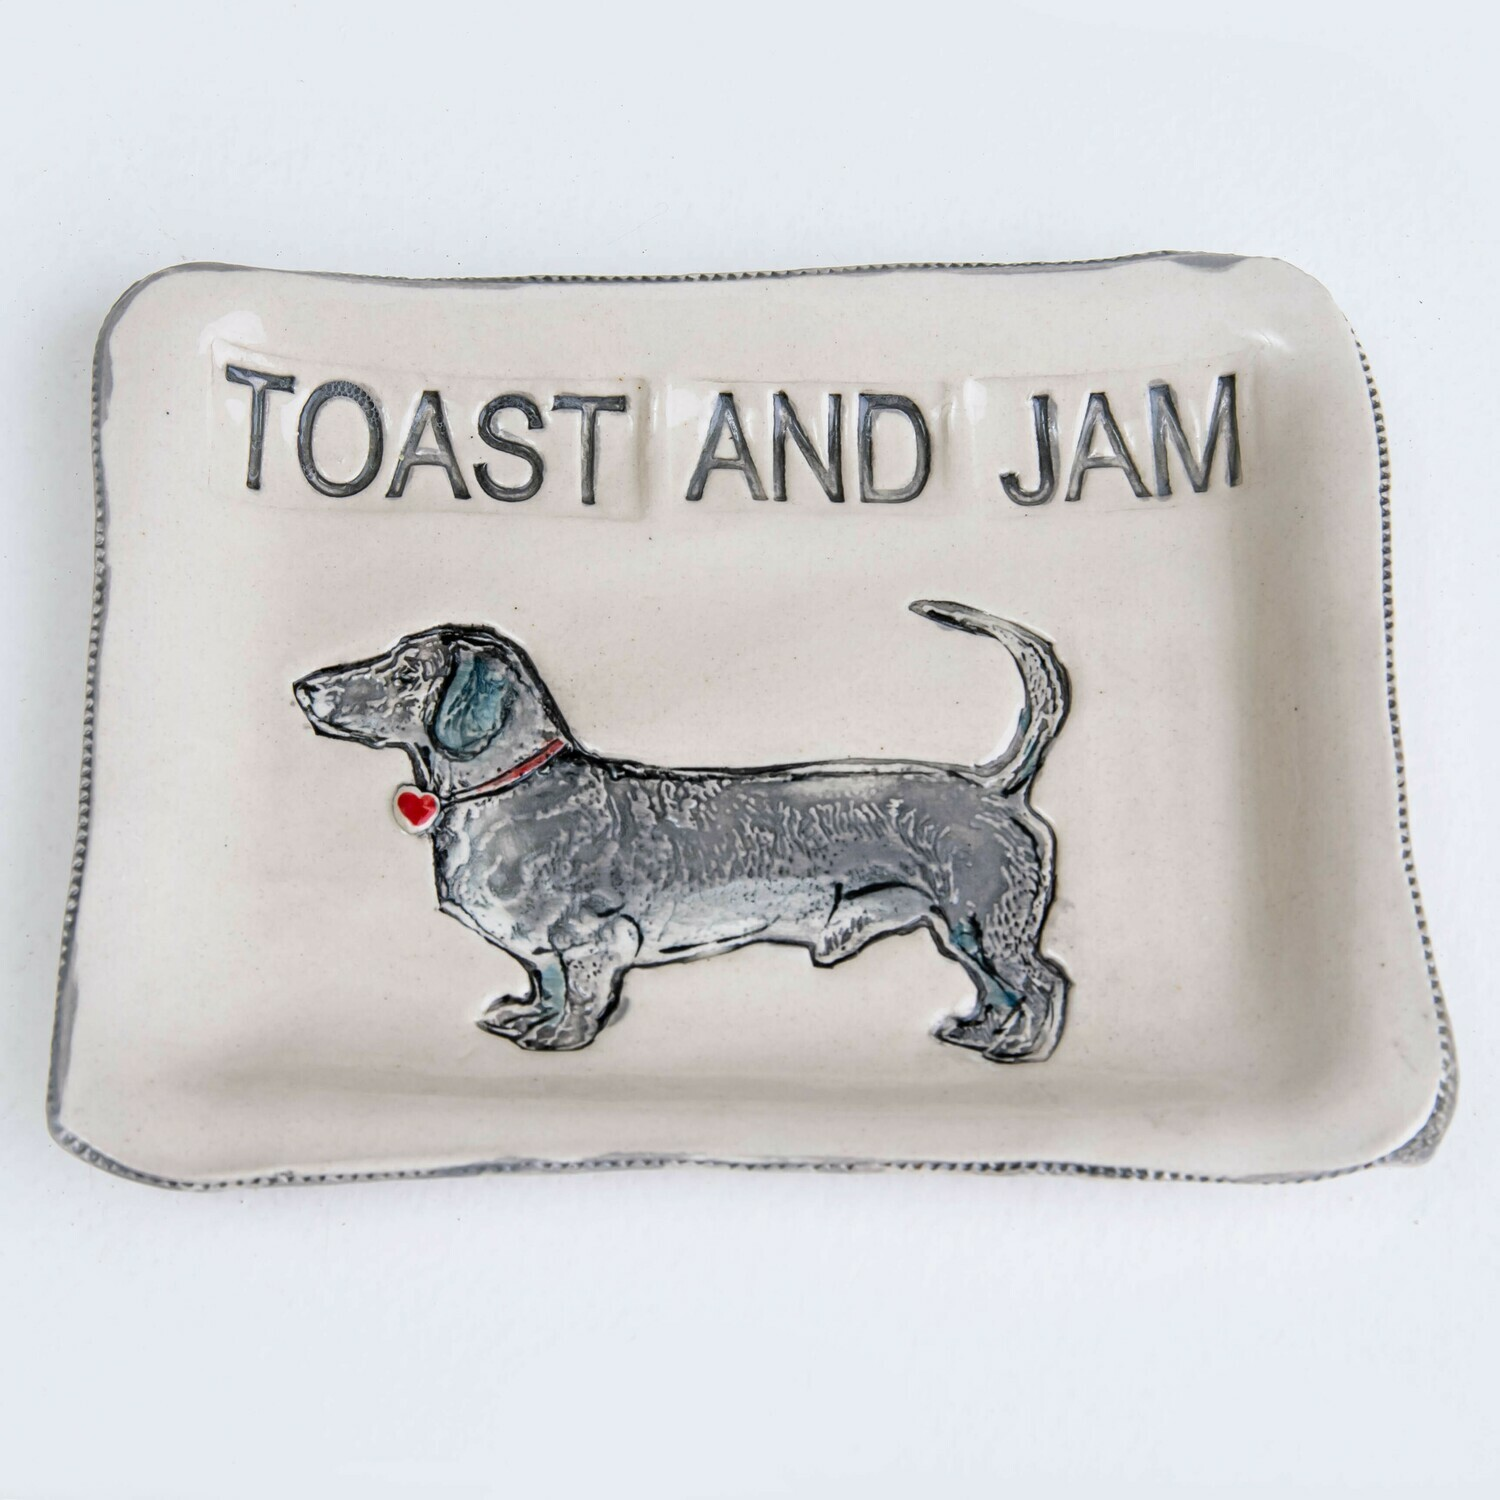 ​Toast and Jam